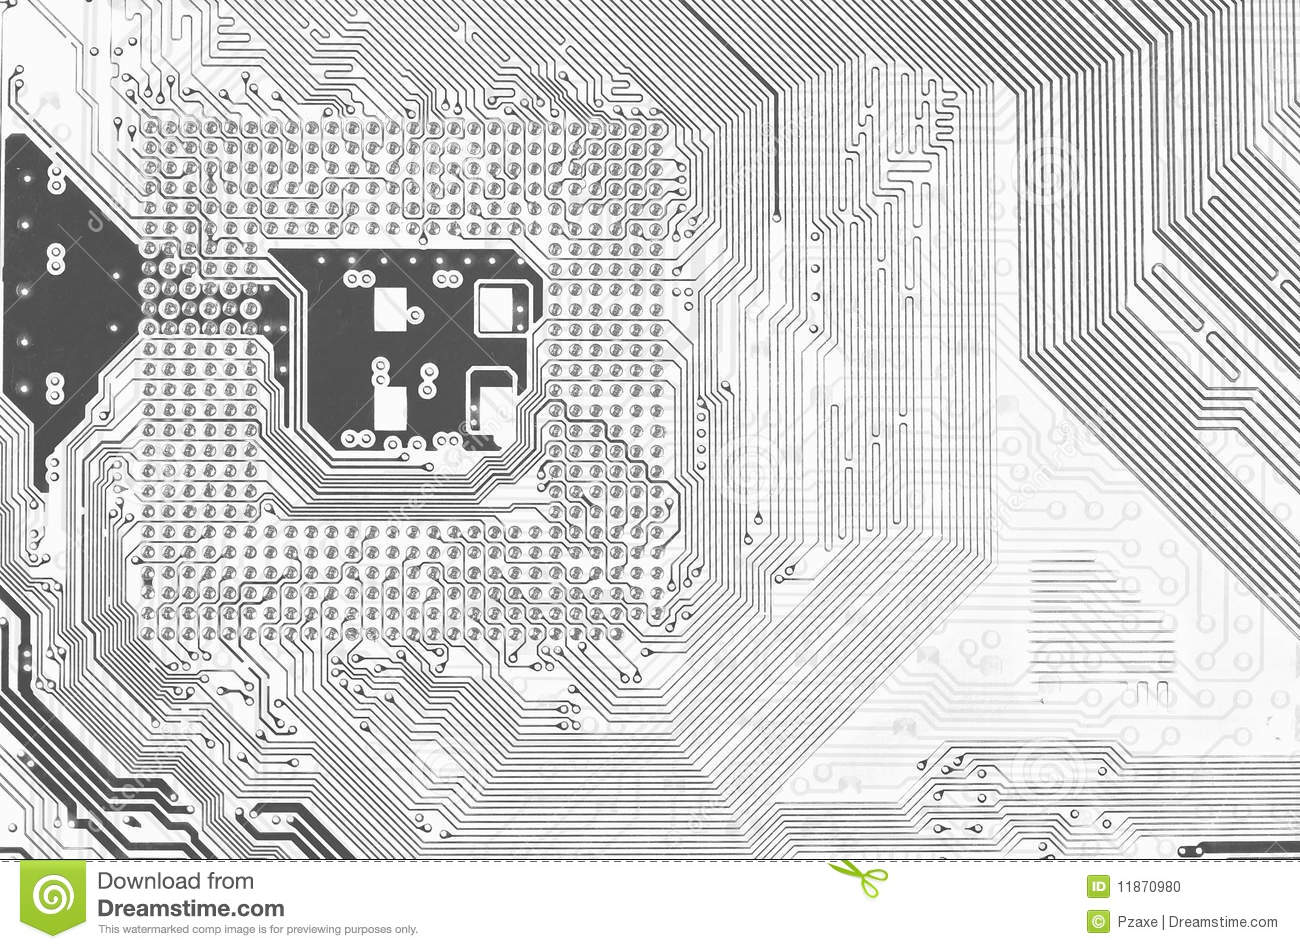 Snap Vector Circuitry Industrial High Tech Black And White Clipart Of Computer Circuit Board K3811151 Search Clip Art Graphic Background Royalty Free Stock Image Cartoondealercom